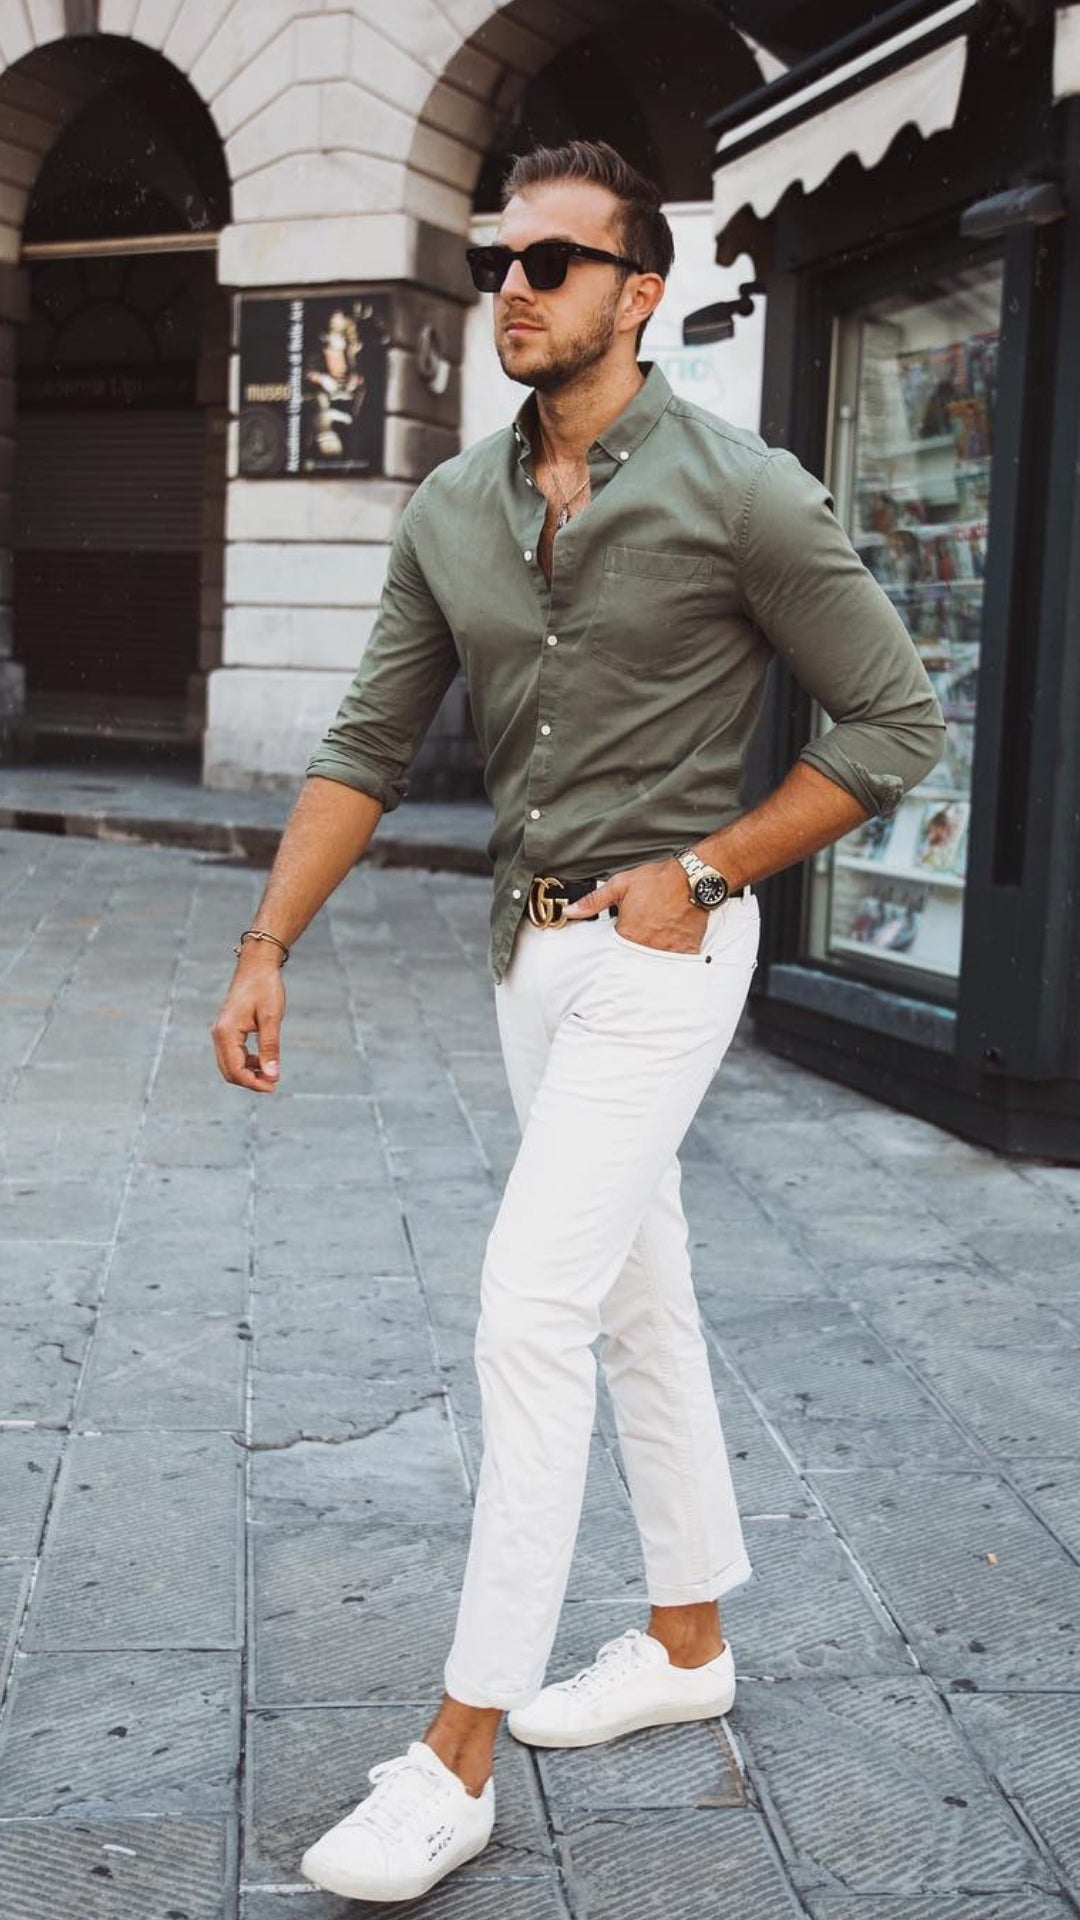 5 COOL WHITE PANTS OUTFITS FOR MEN 4 - What to Wear with White Jeans: Men's Ultimate Guide